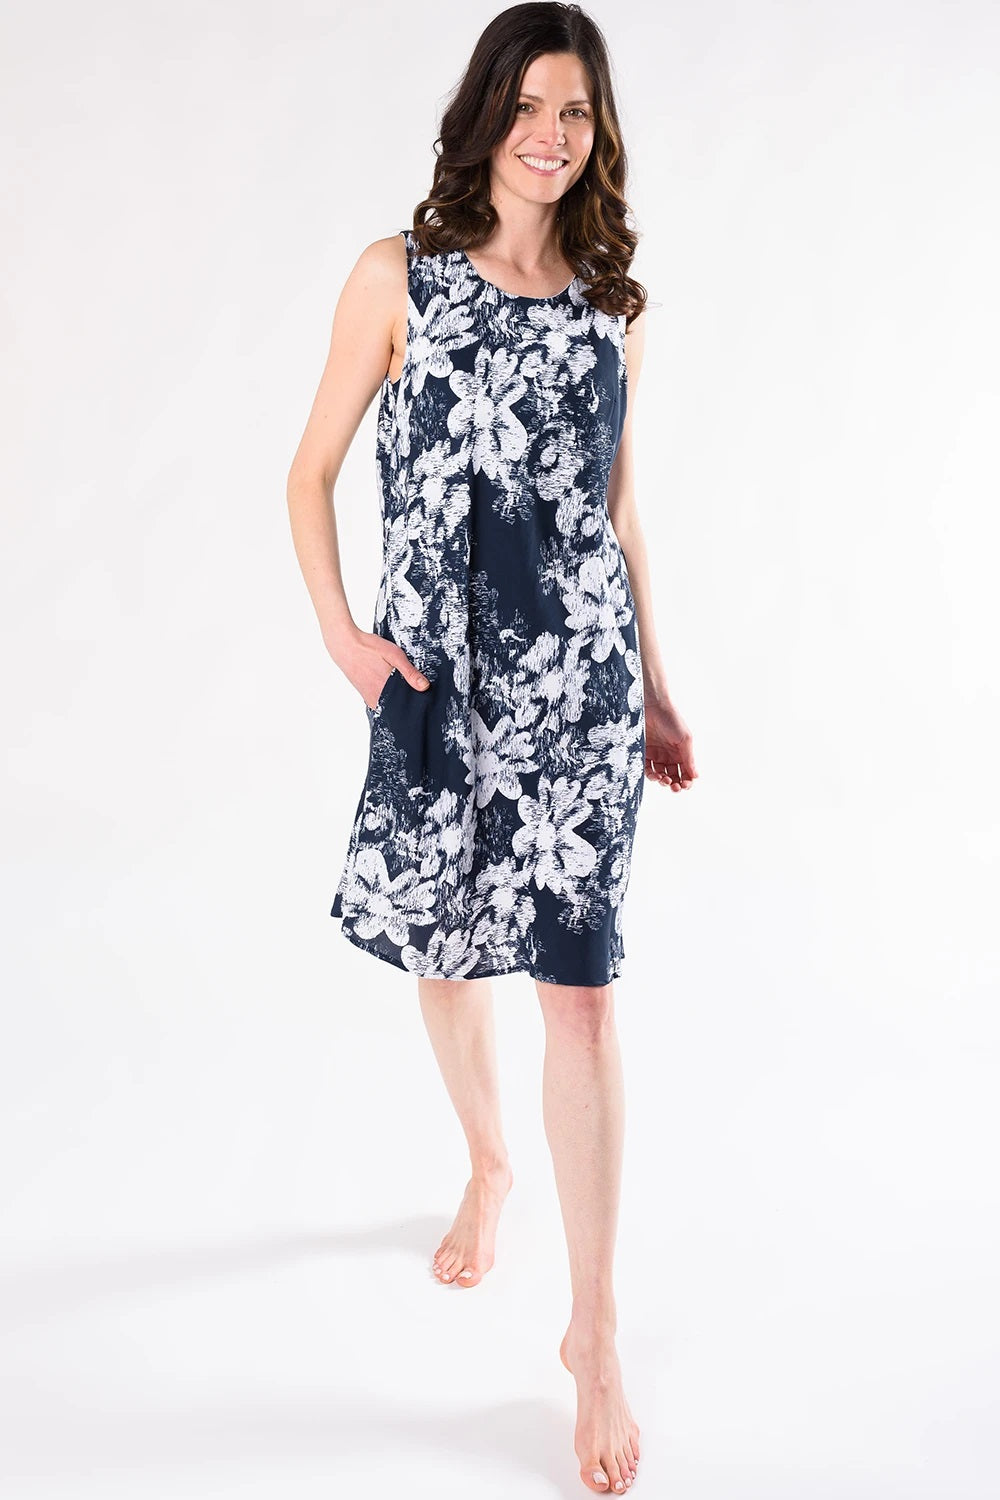 The June Floral Print dress has a scoop neck front, a V-neck back. Made with an easy to wear and smooth woven Tencel fabric that's airy and breathable; it has an elegant seam detail running down the back.  Fabrication: 100% Tencel TERRERA $155.00 Ink Blue